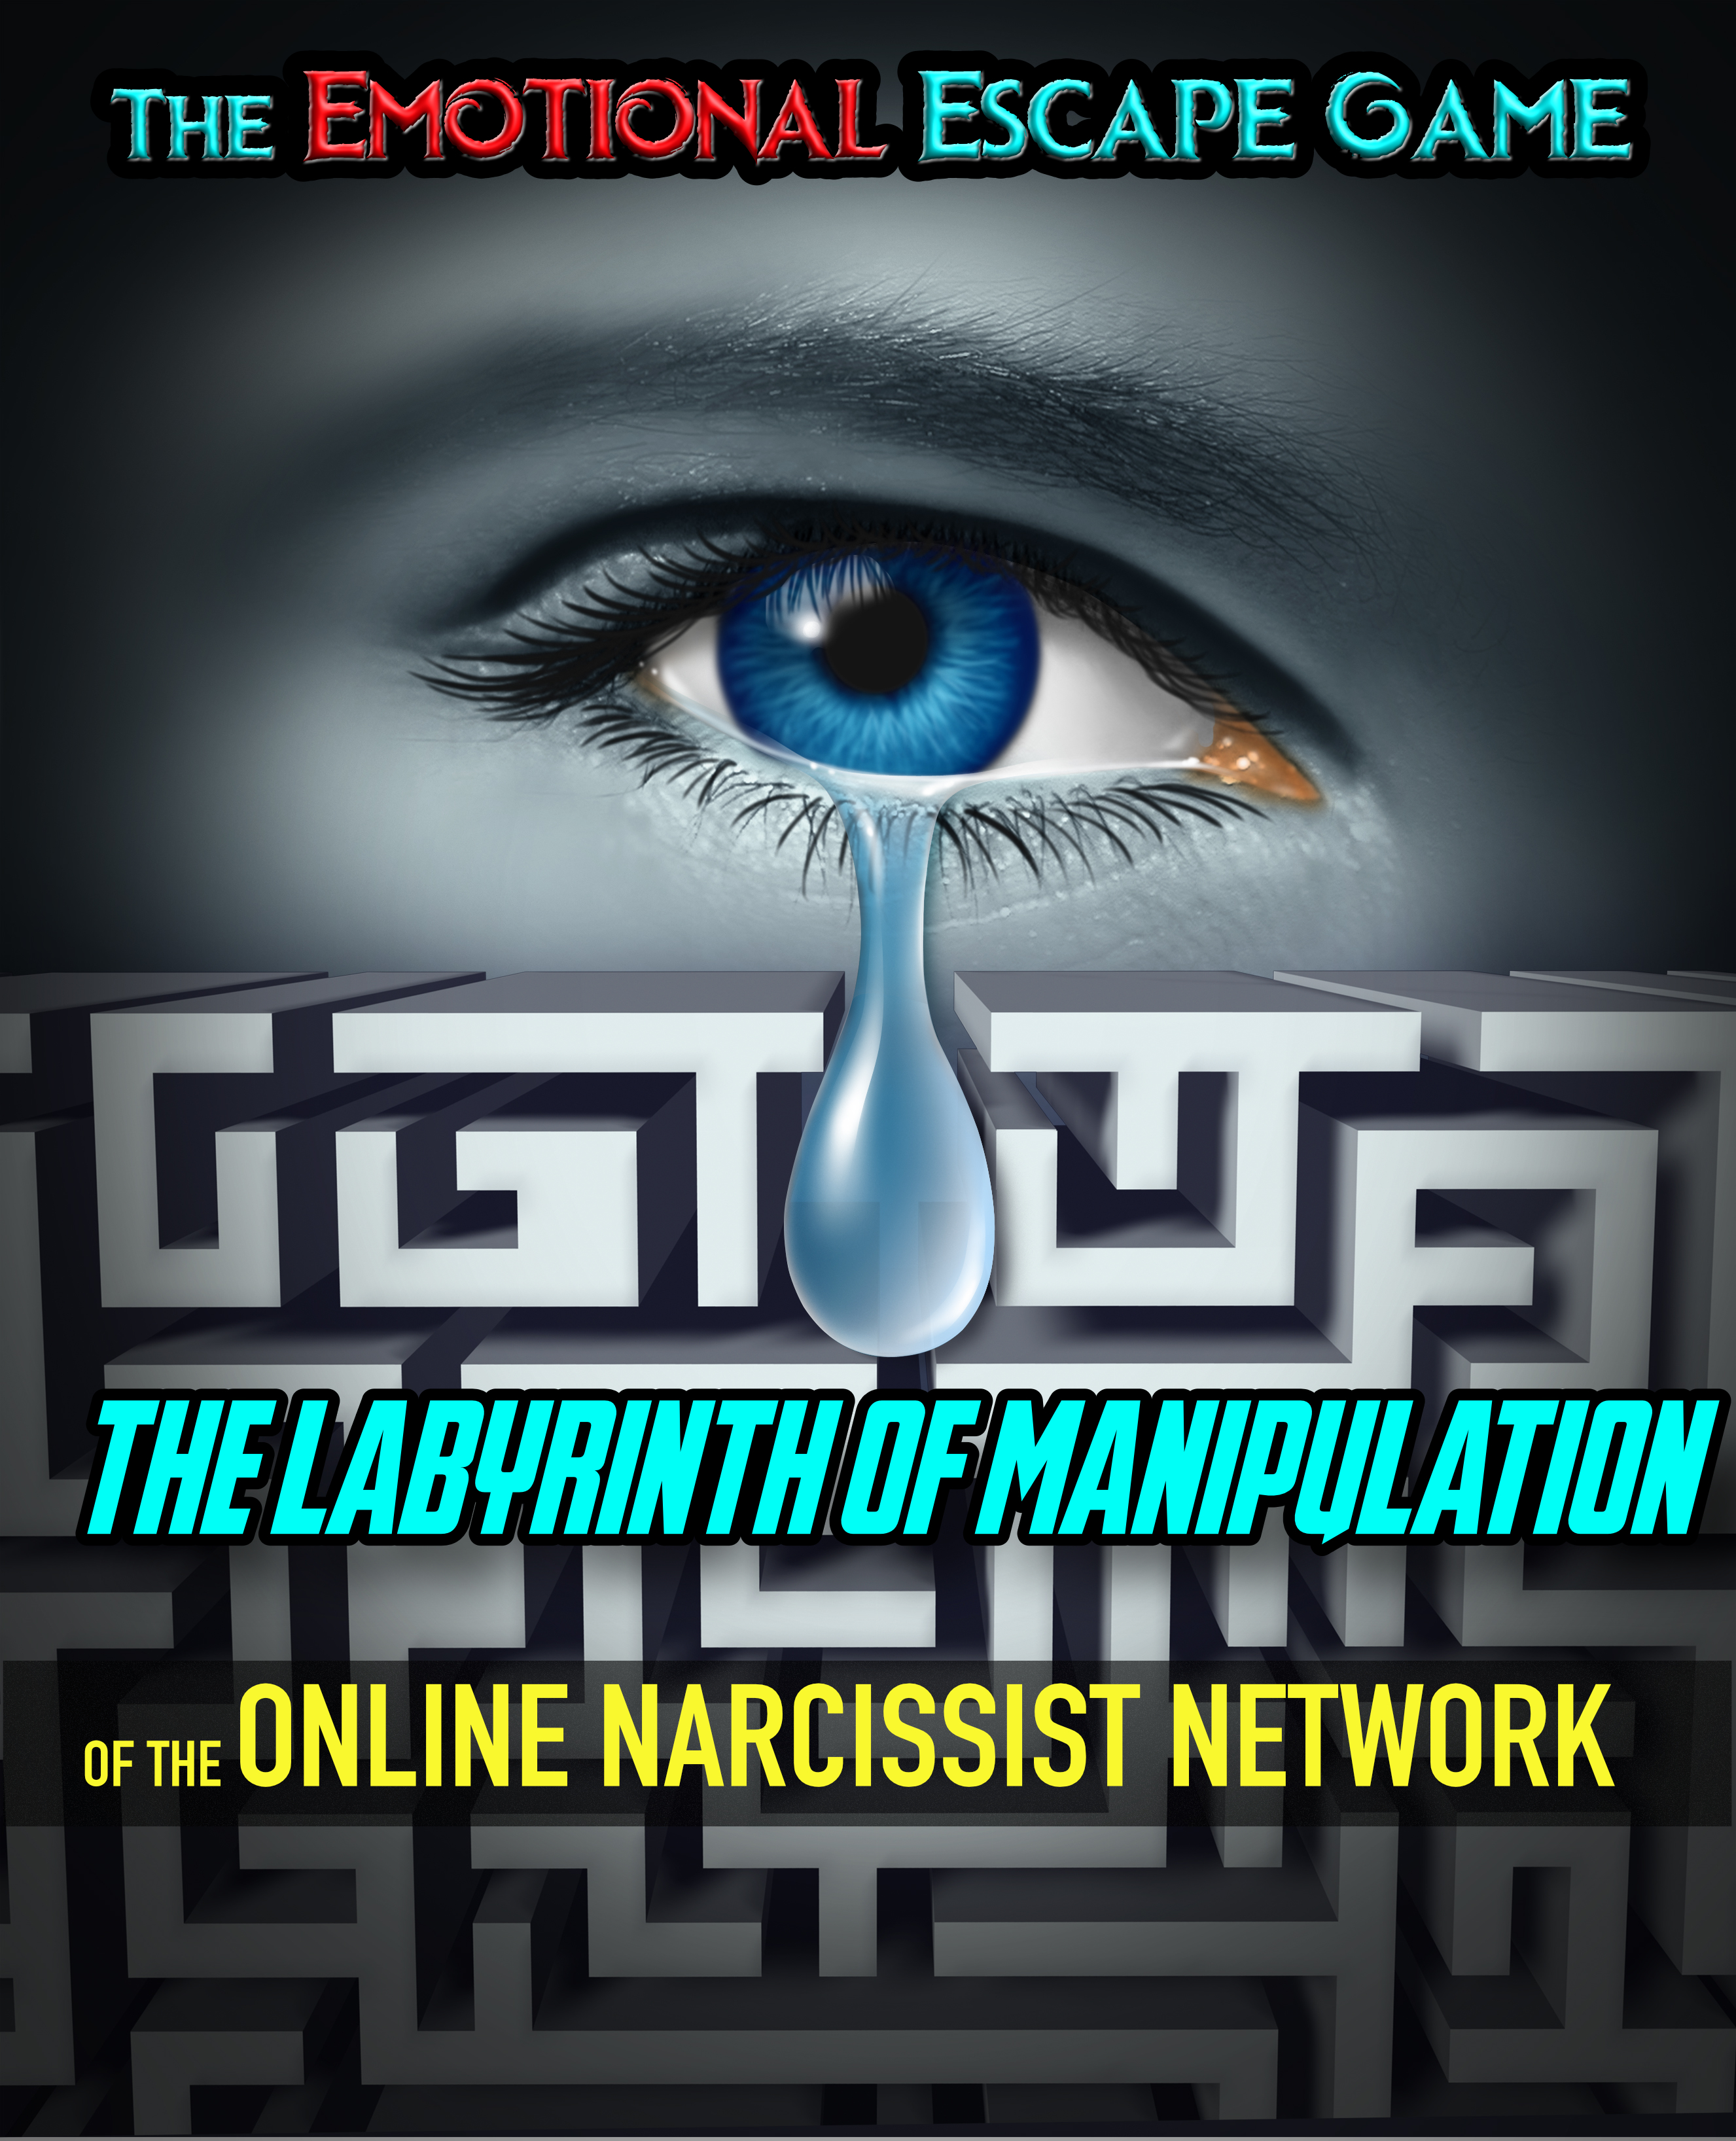 Online Narcissist Abuse: Cyber Abuse Victim Shares Her Story